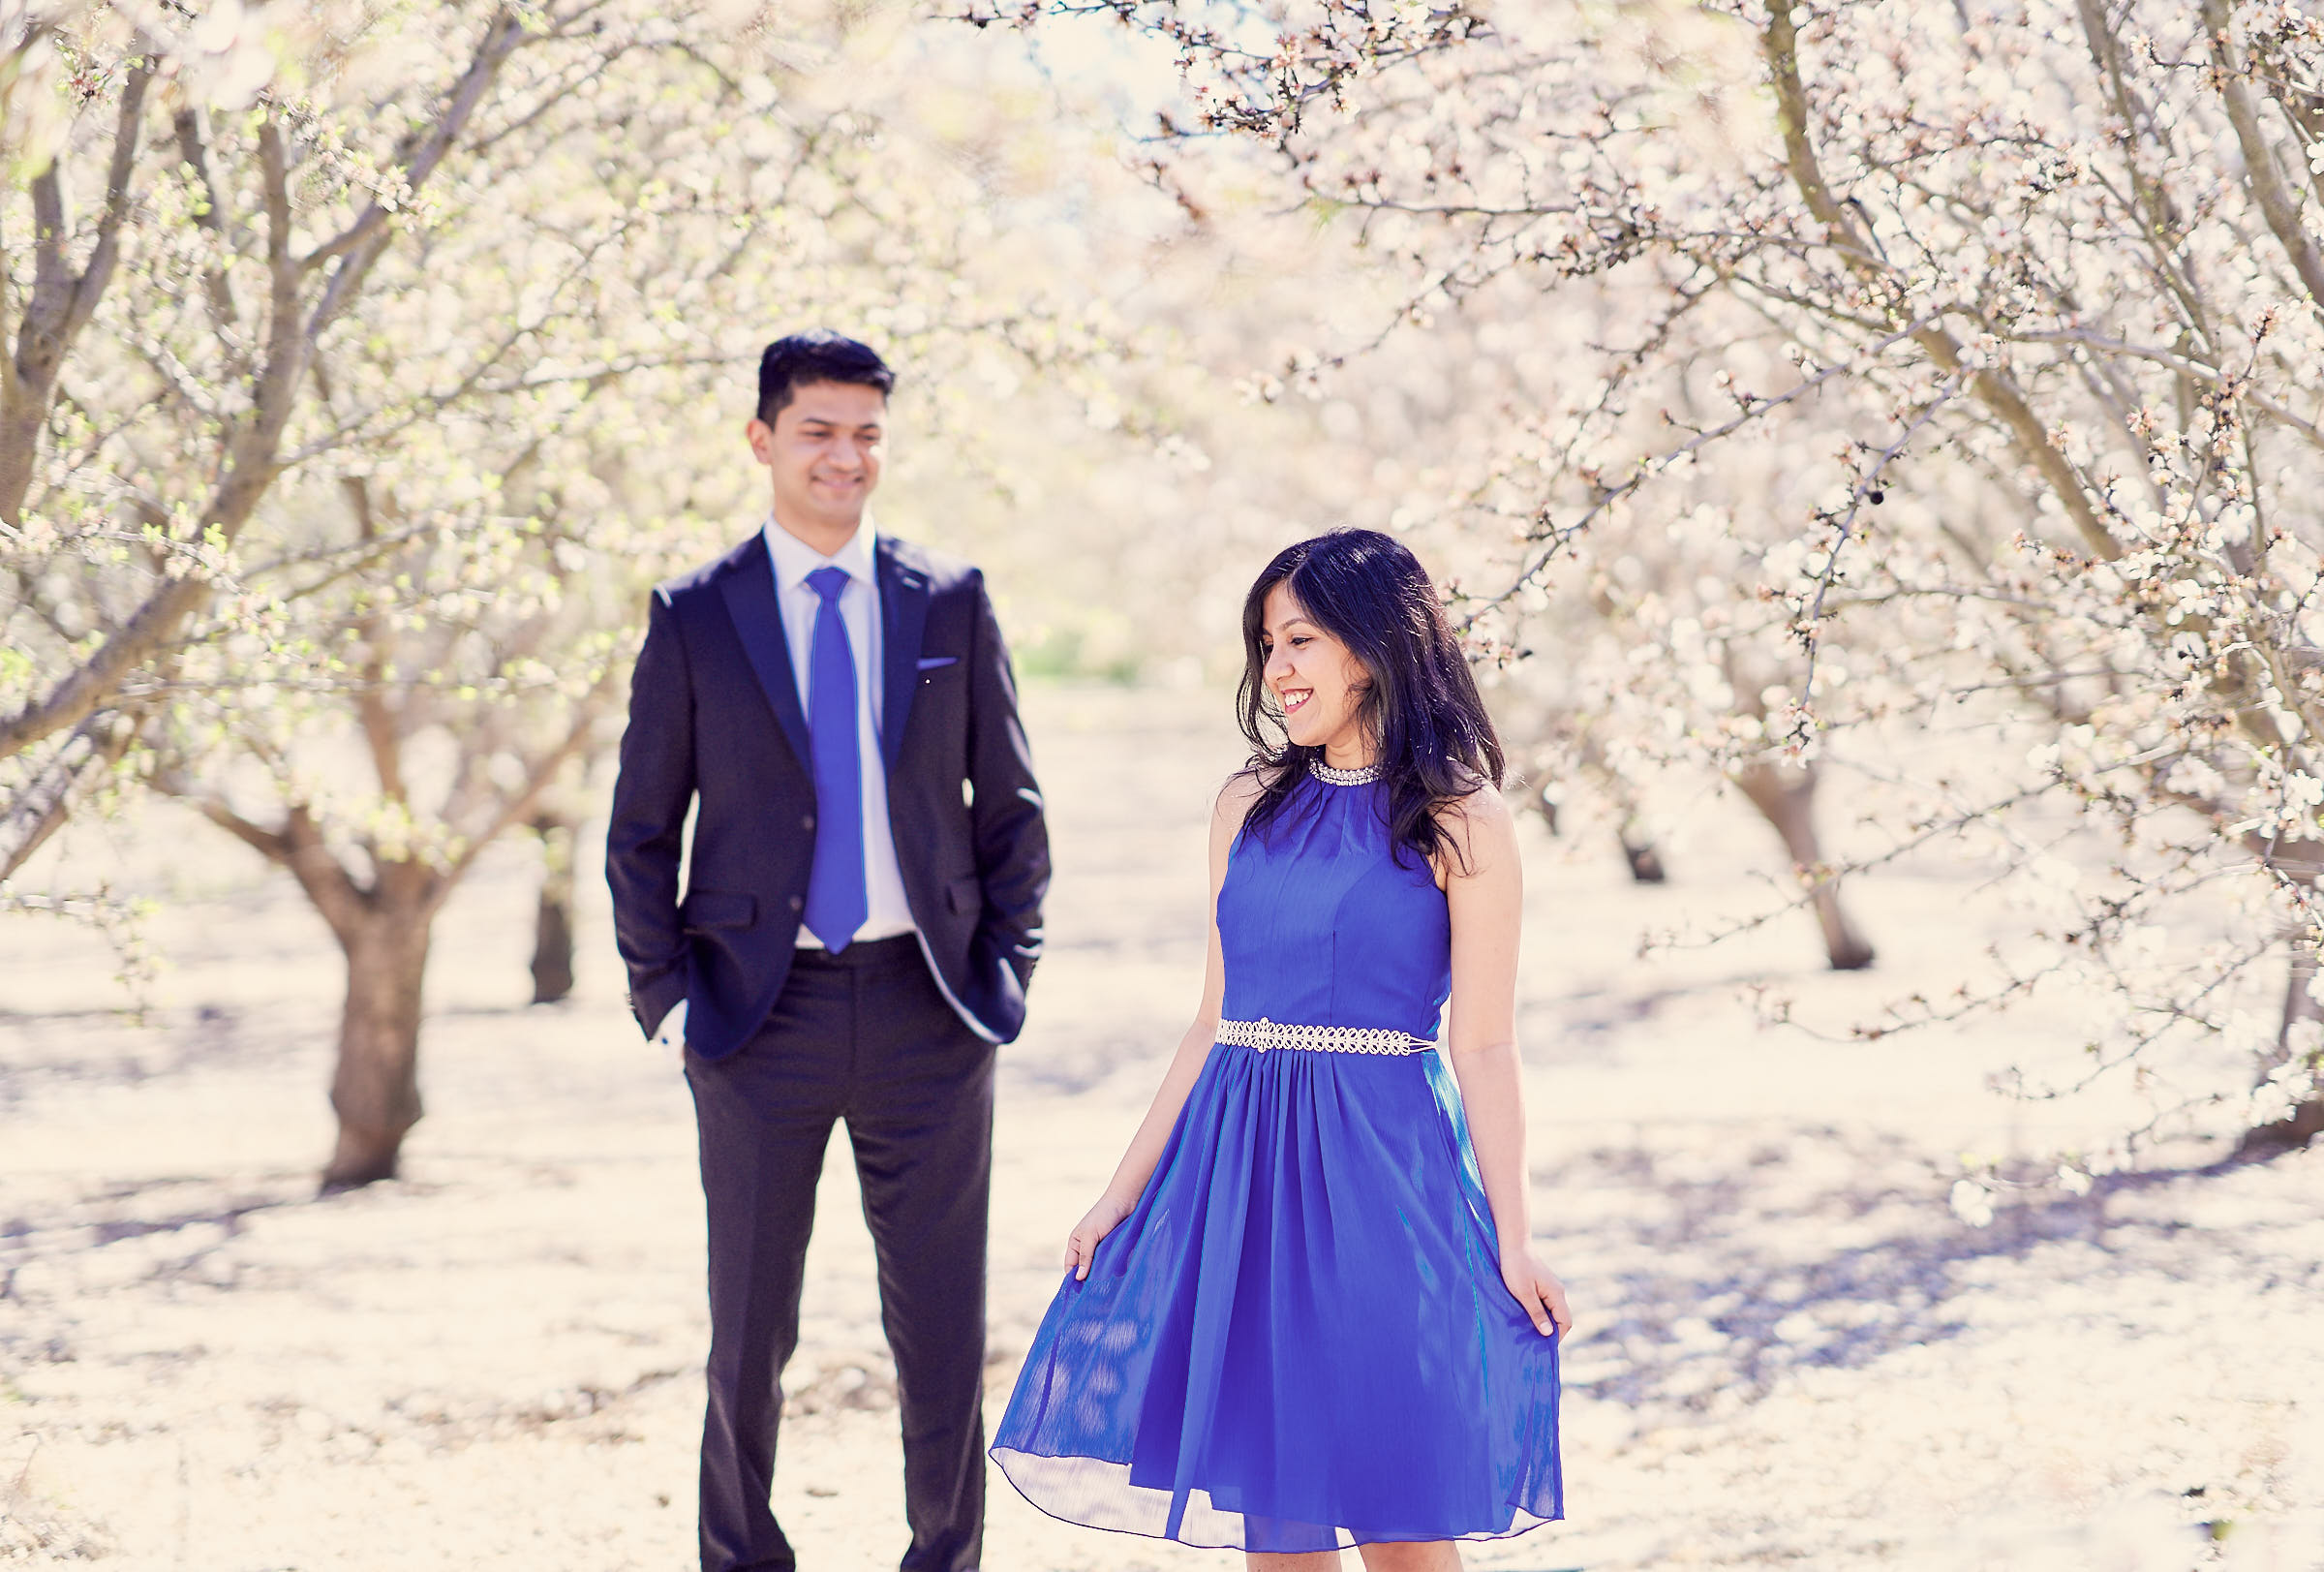 Simple Poses For Couples Almond Orchards